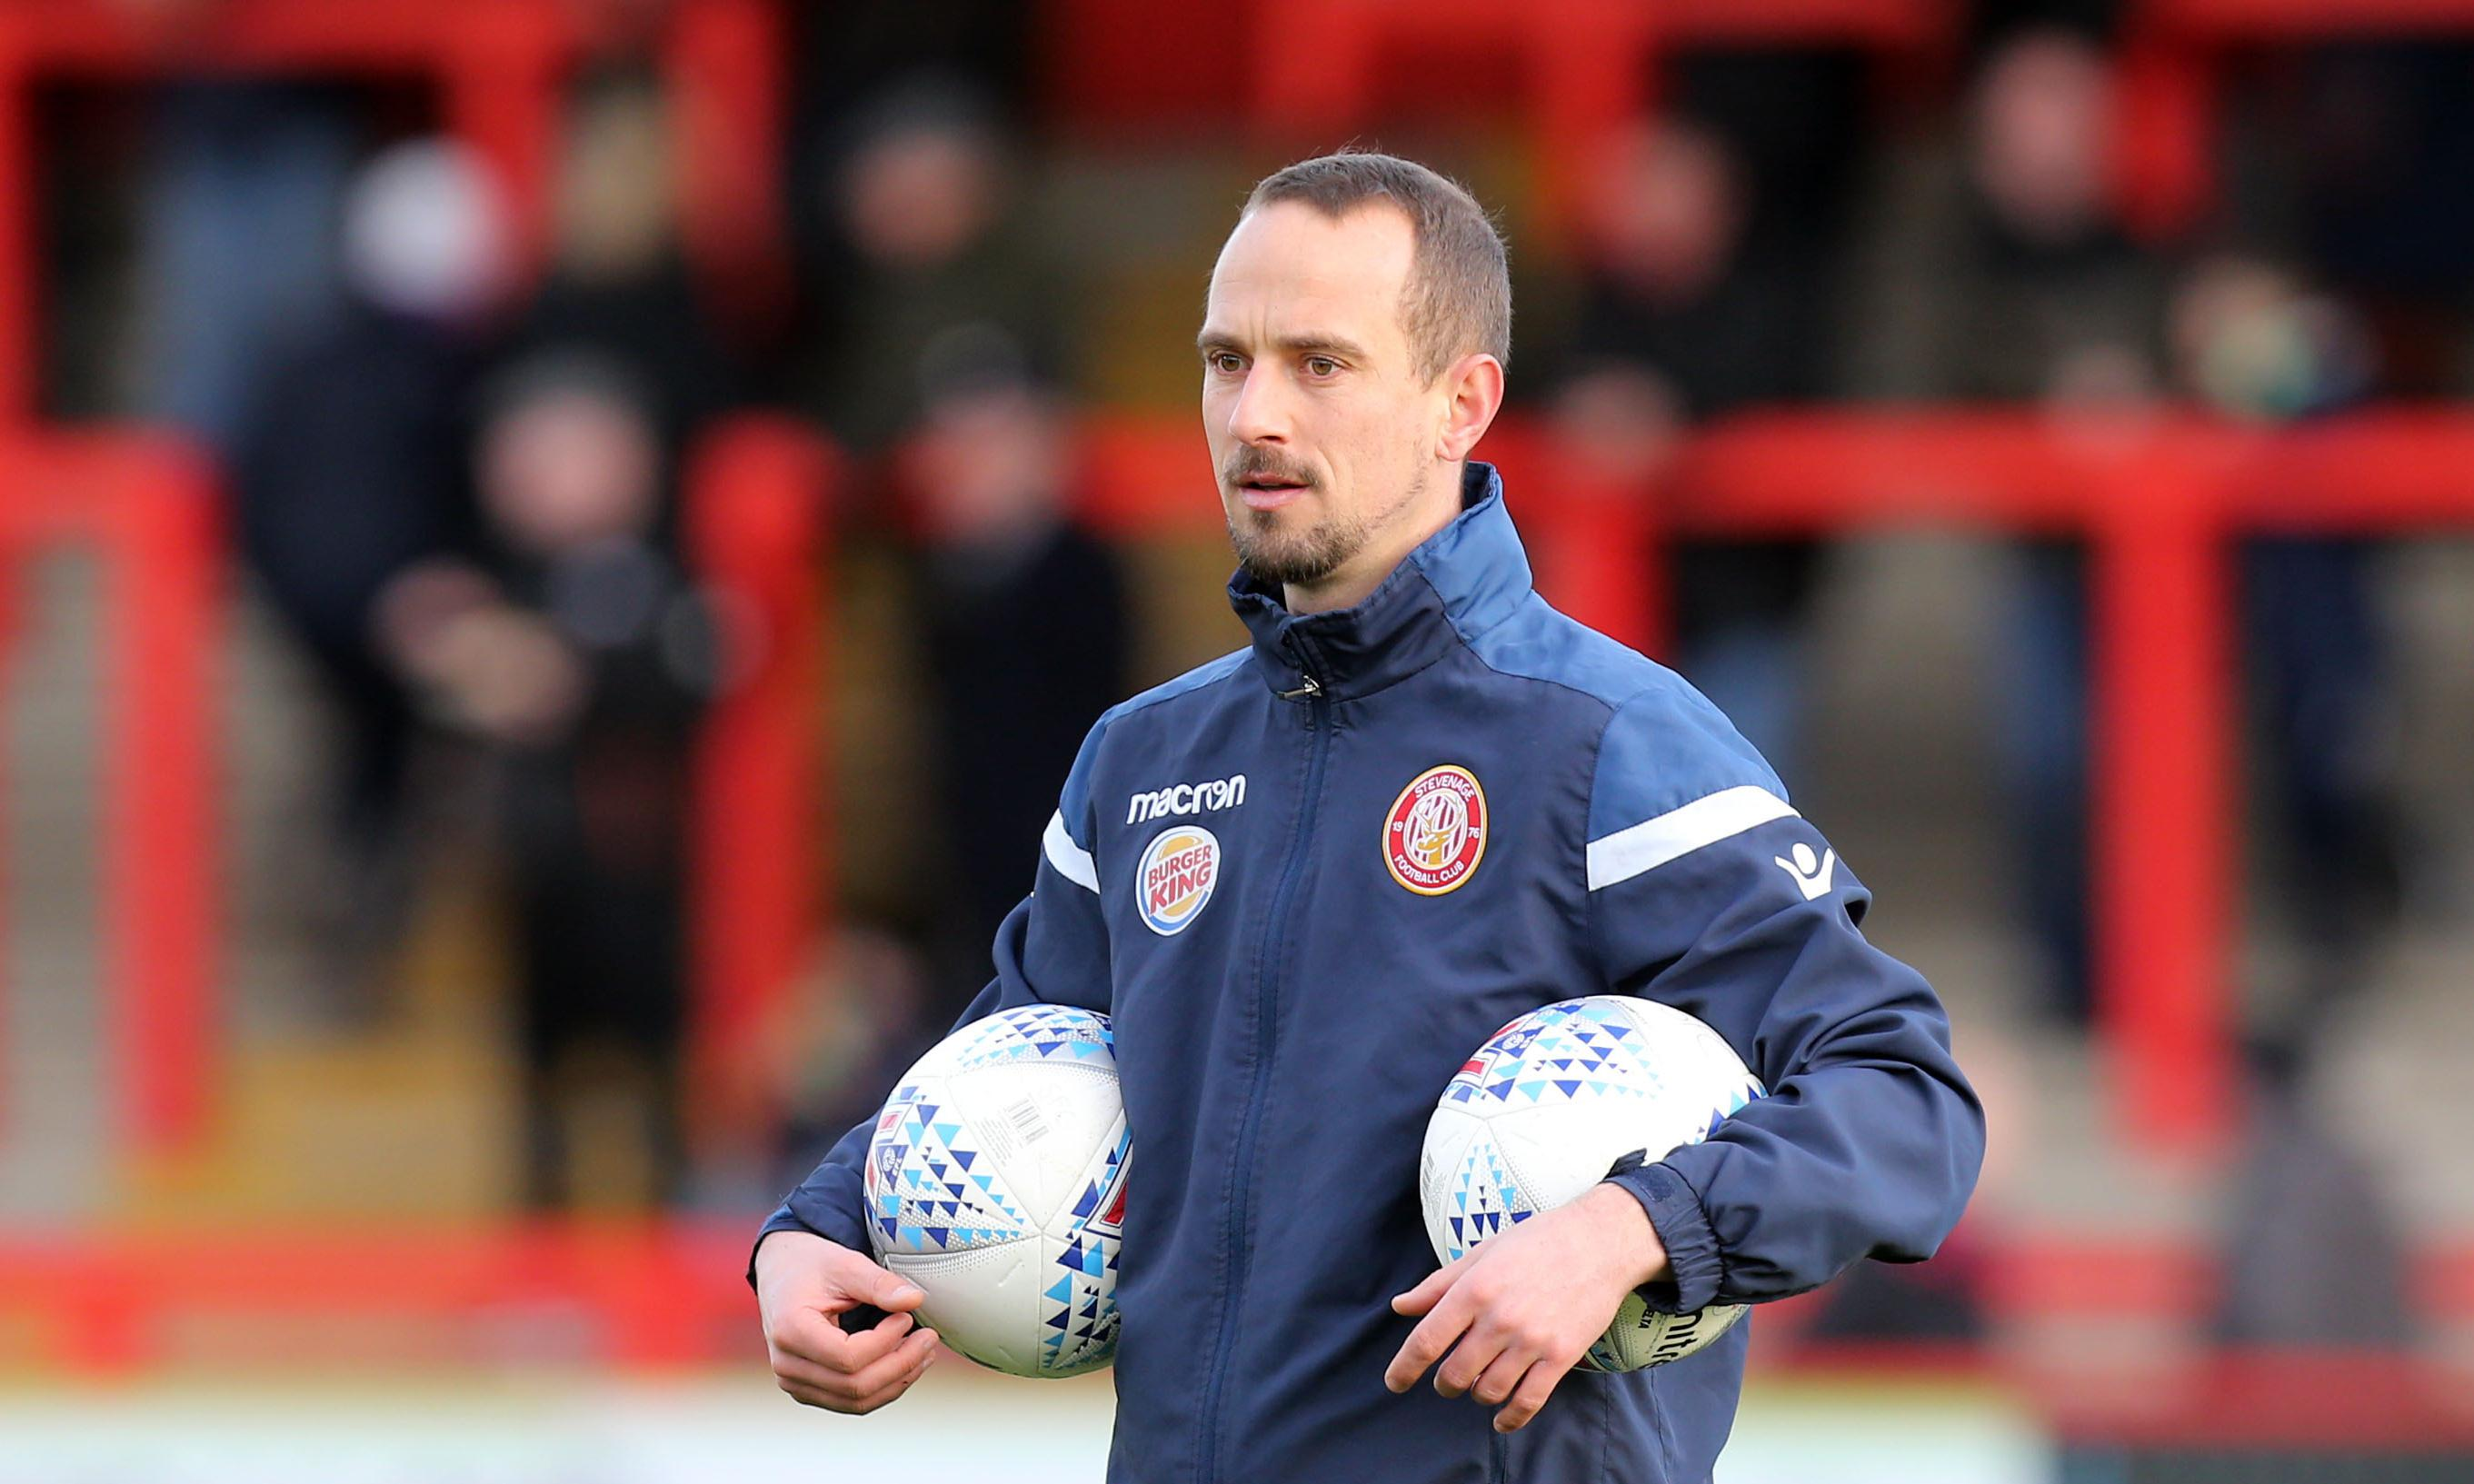 FA dismisses charge against Mark Sampson over alleged racist remark